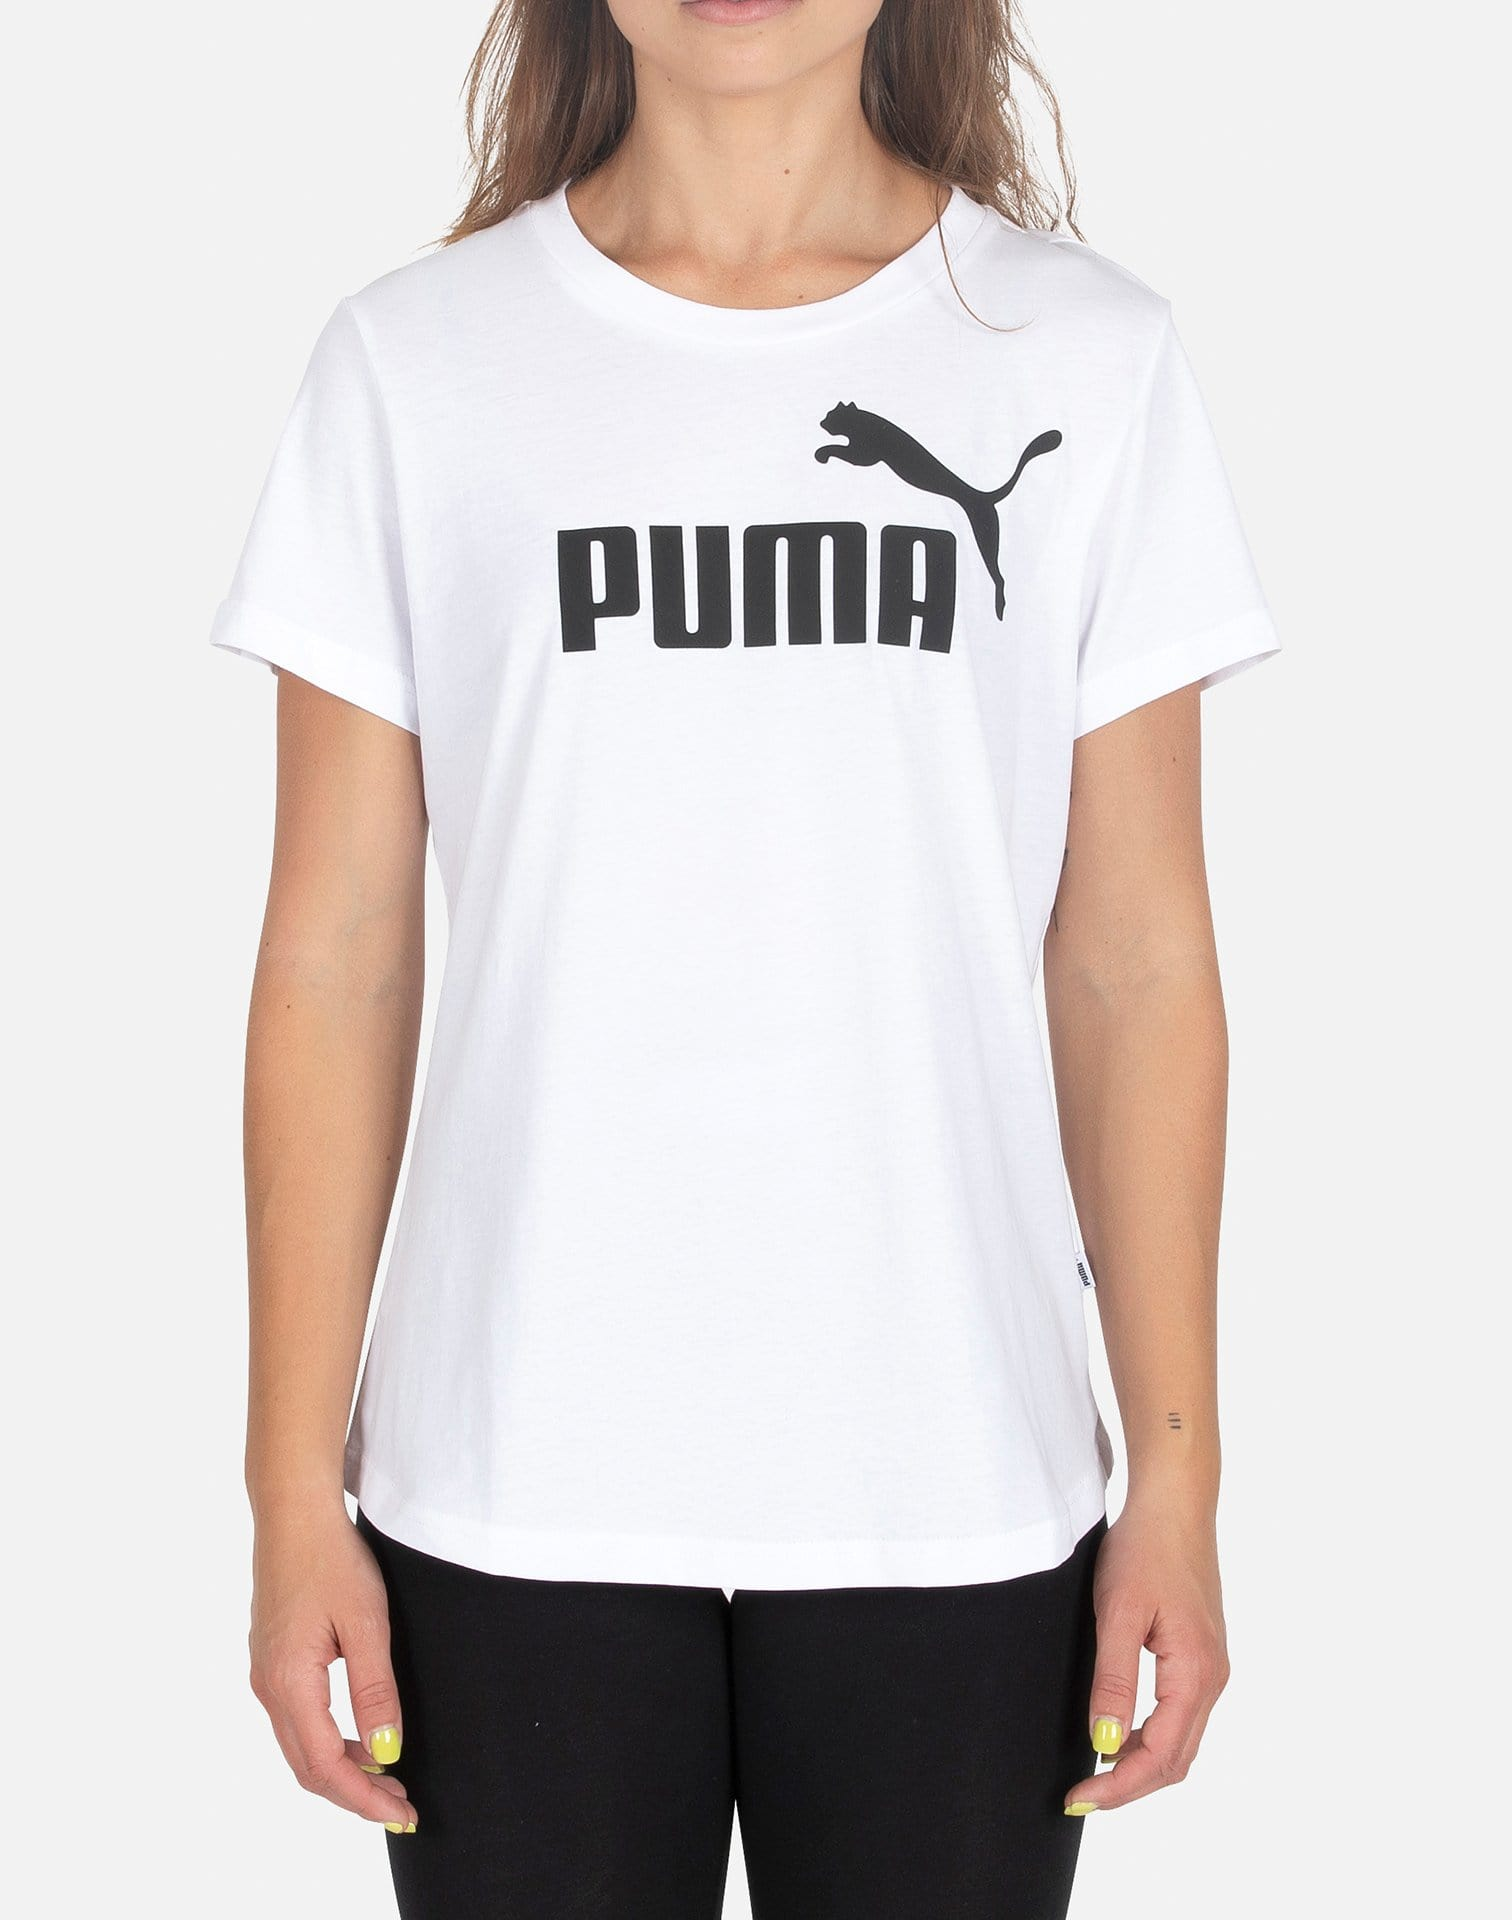 PUMA Women's Amplified Tee